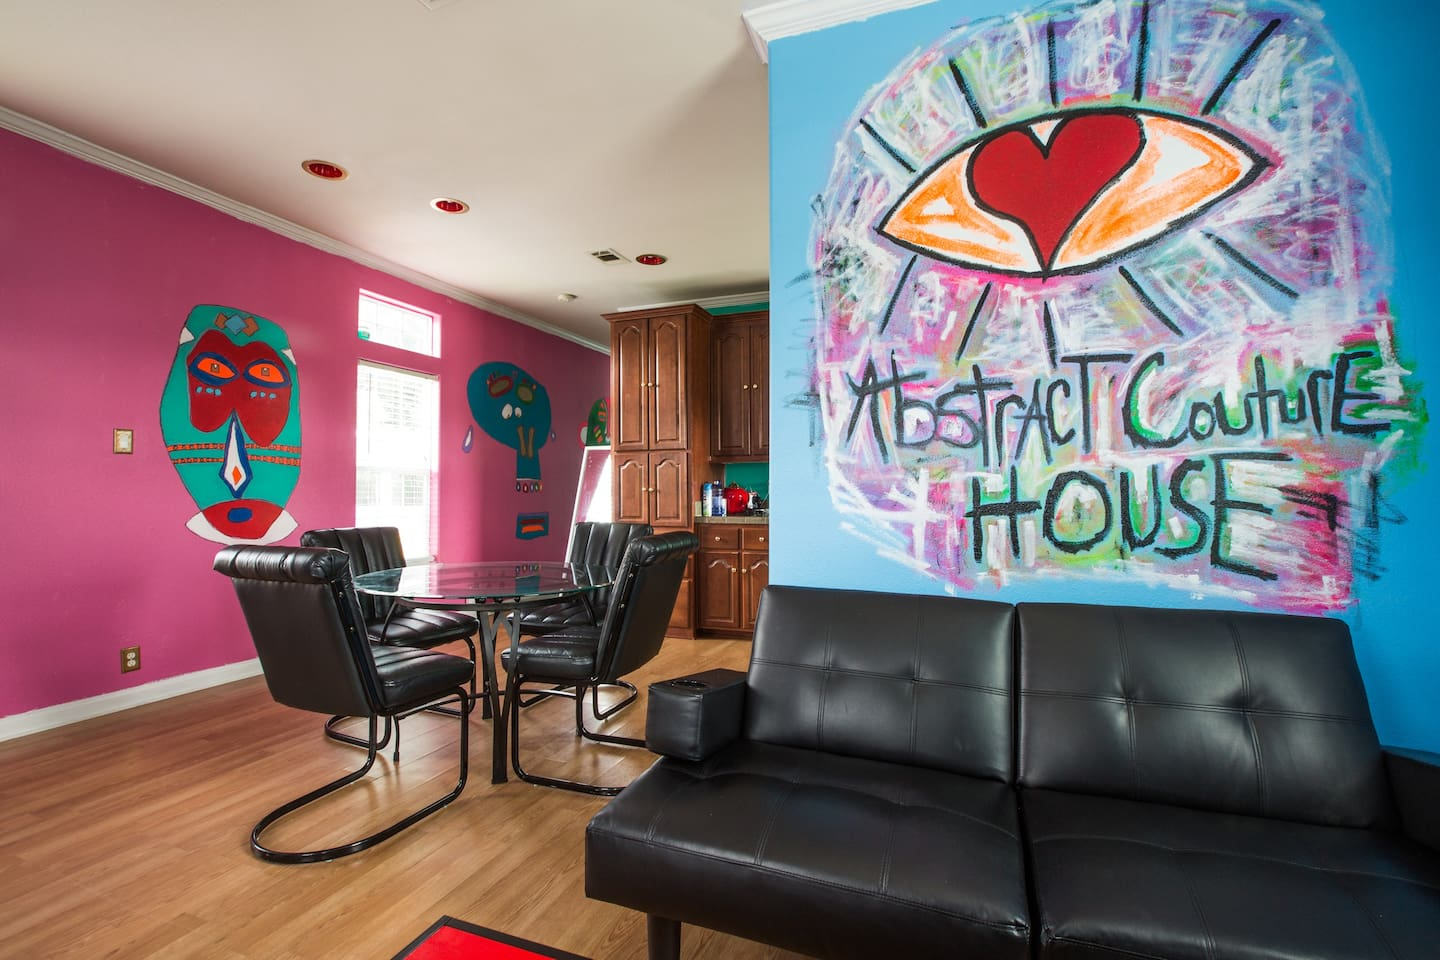 Welcome to Abstract Couture House New Orleans. #ACH